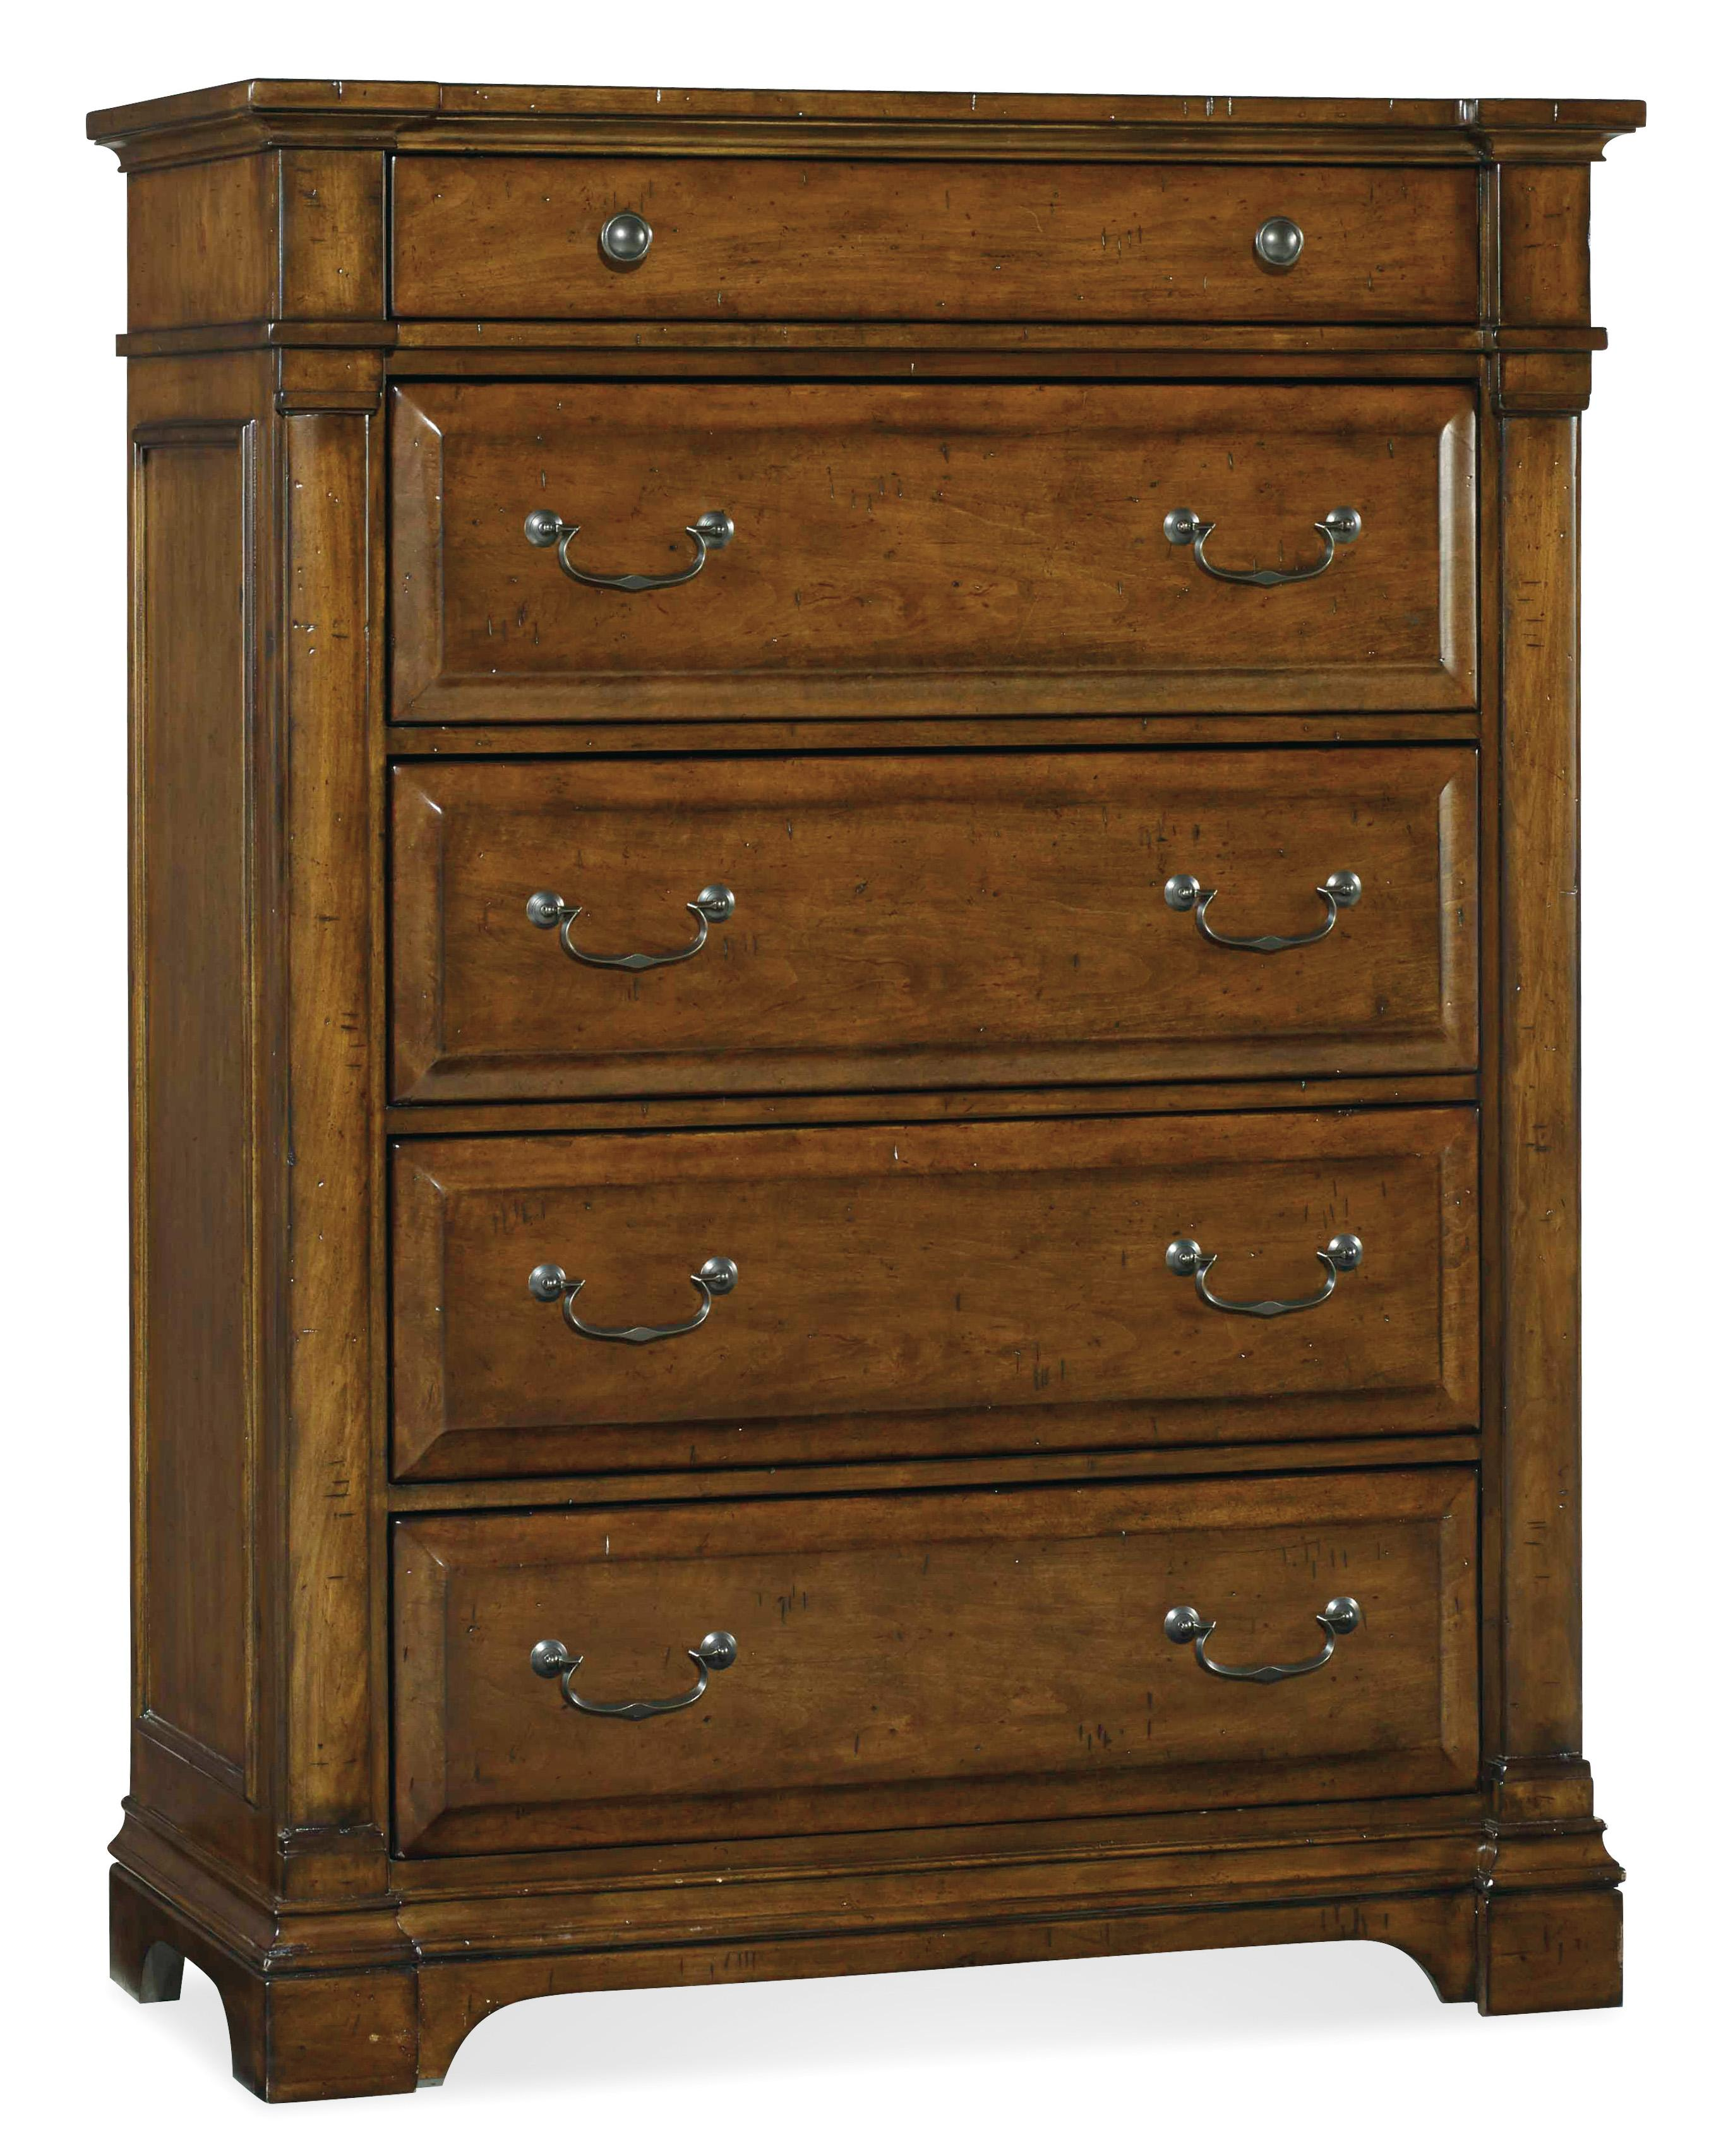 inlaid bombe master louis chest top commode case drawers french large xv commodes f furniture at storage of chests cupboard pieces marble id